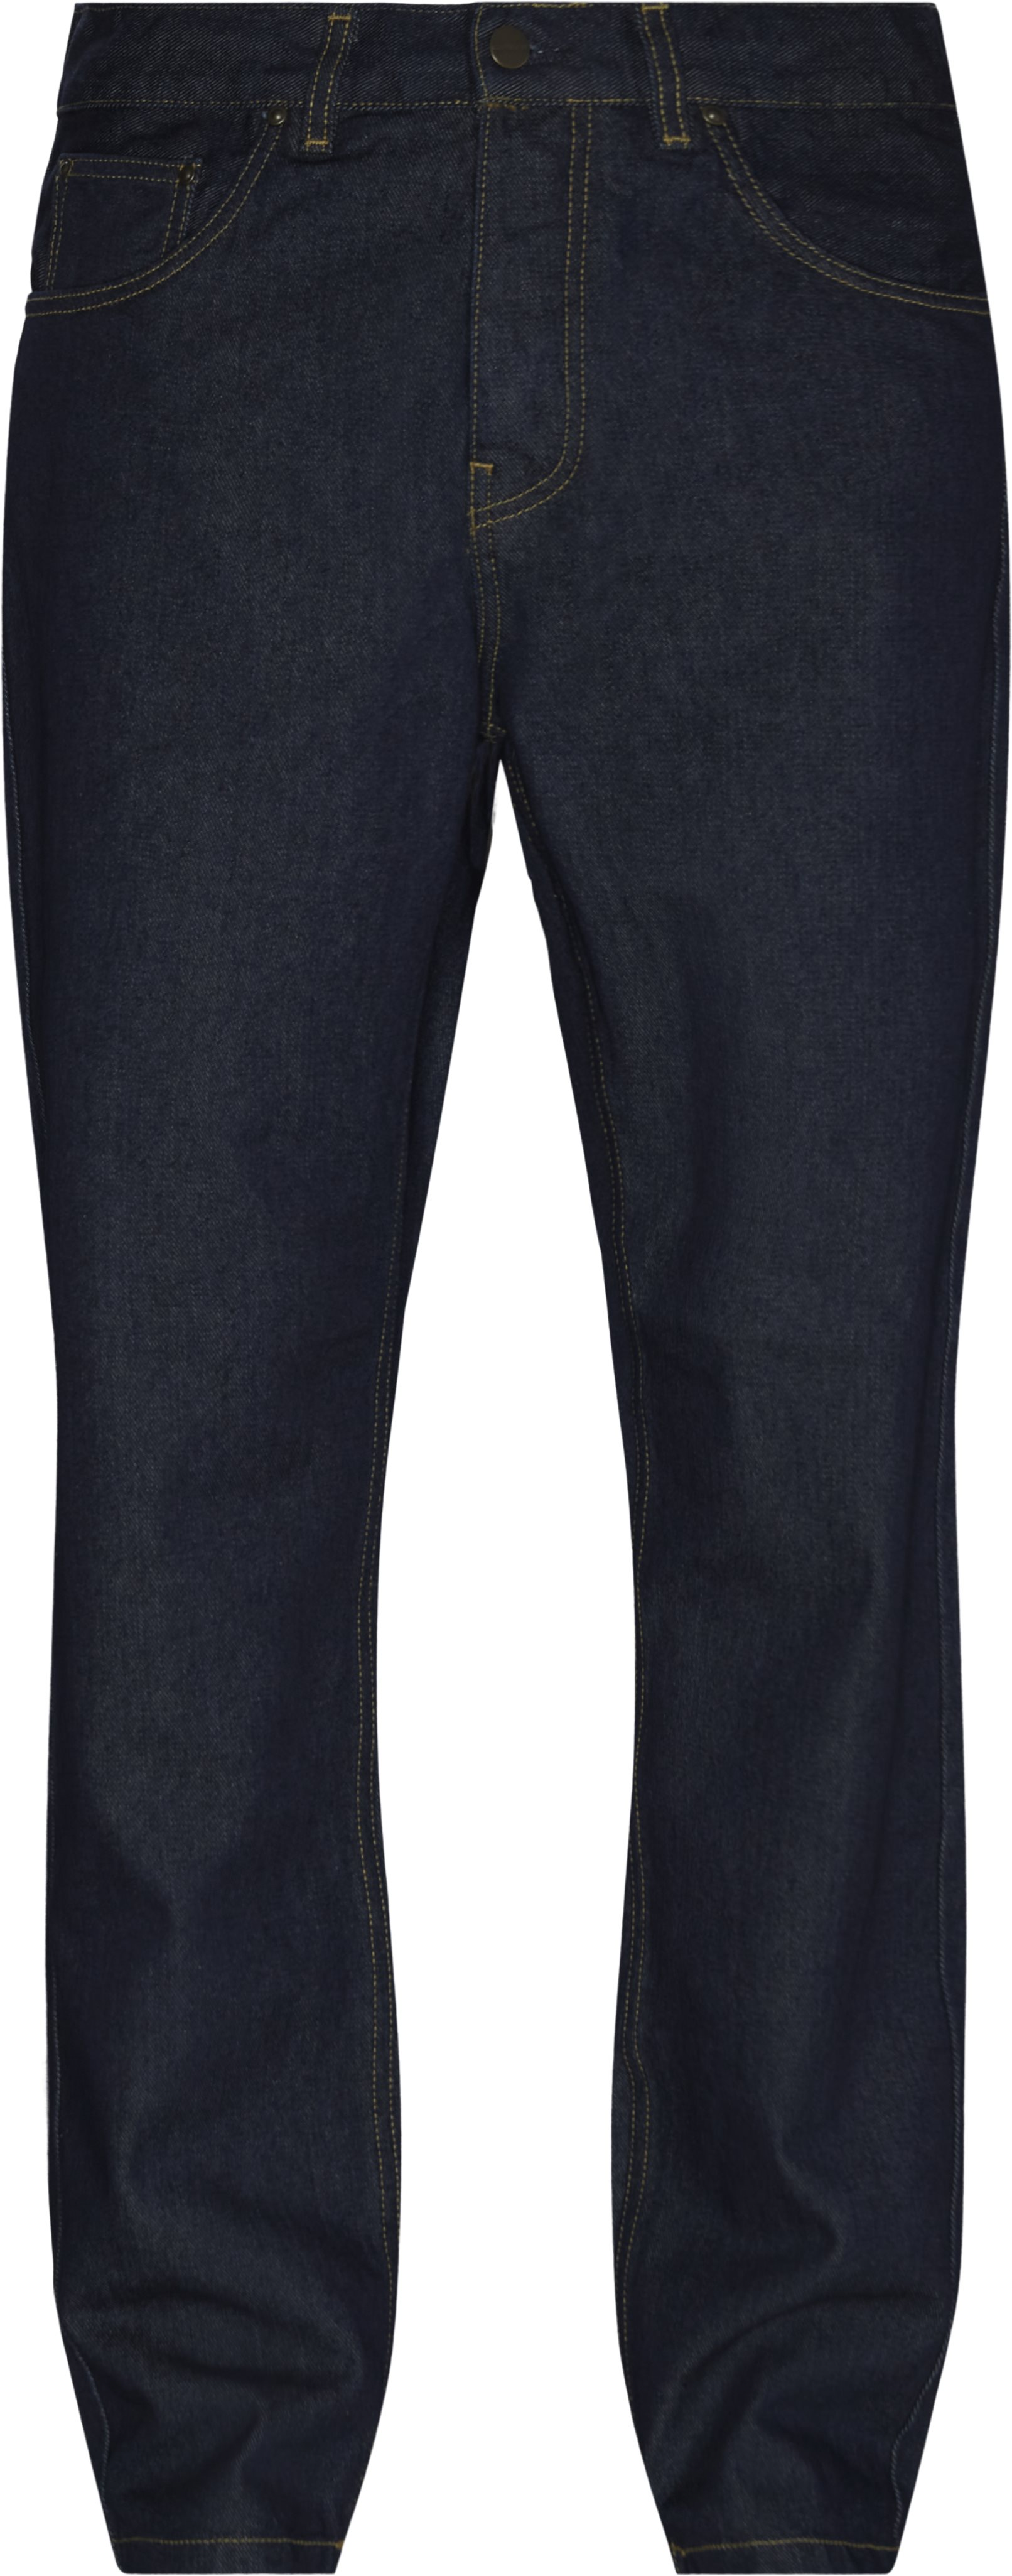 Newel Pant - Jeans - Relaxed fit - Blue